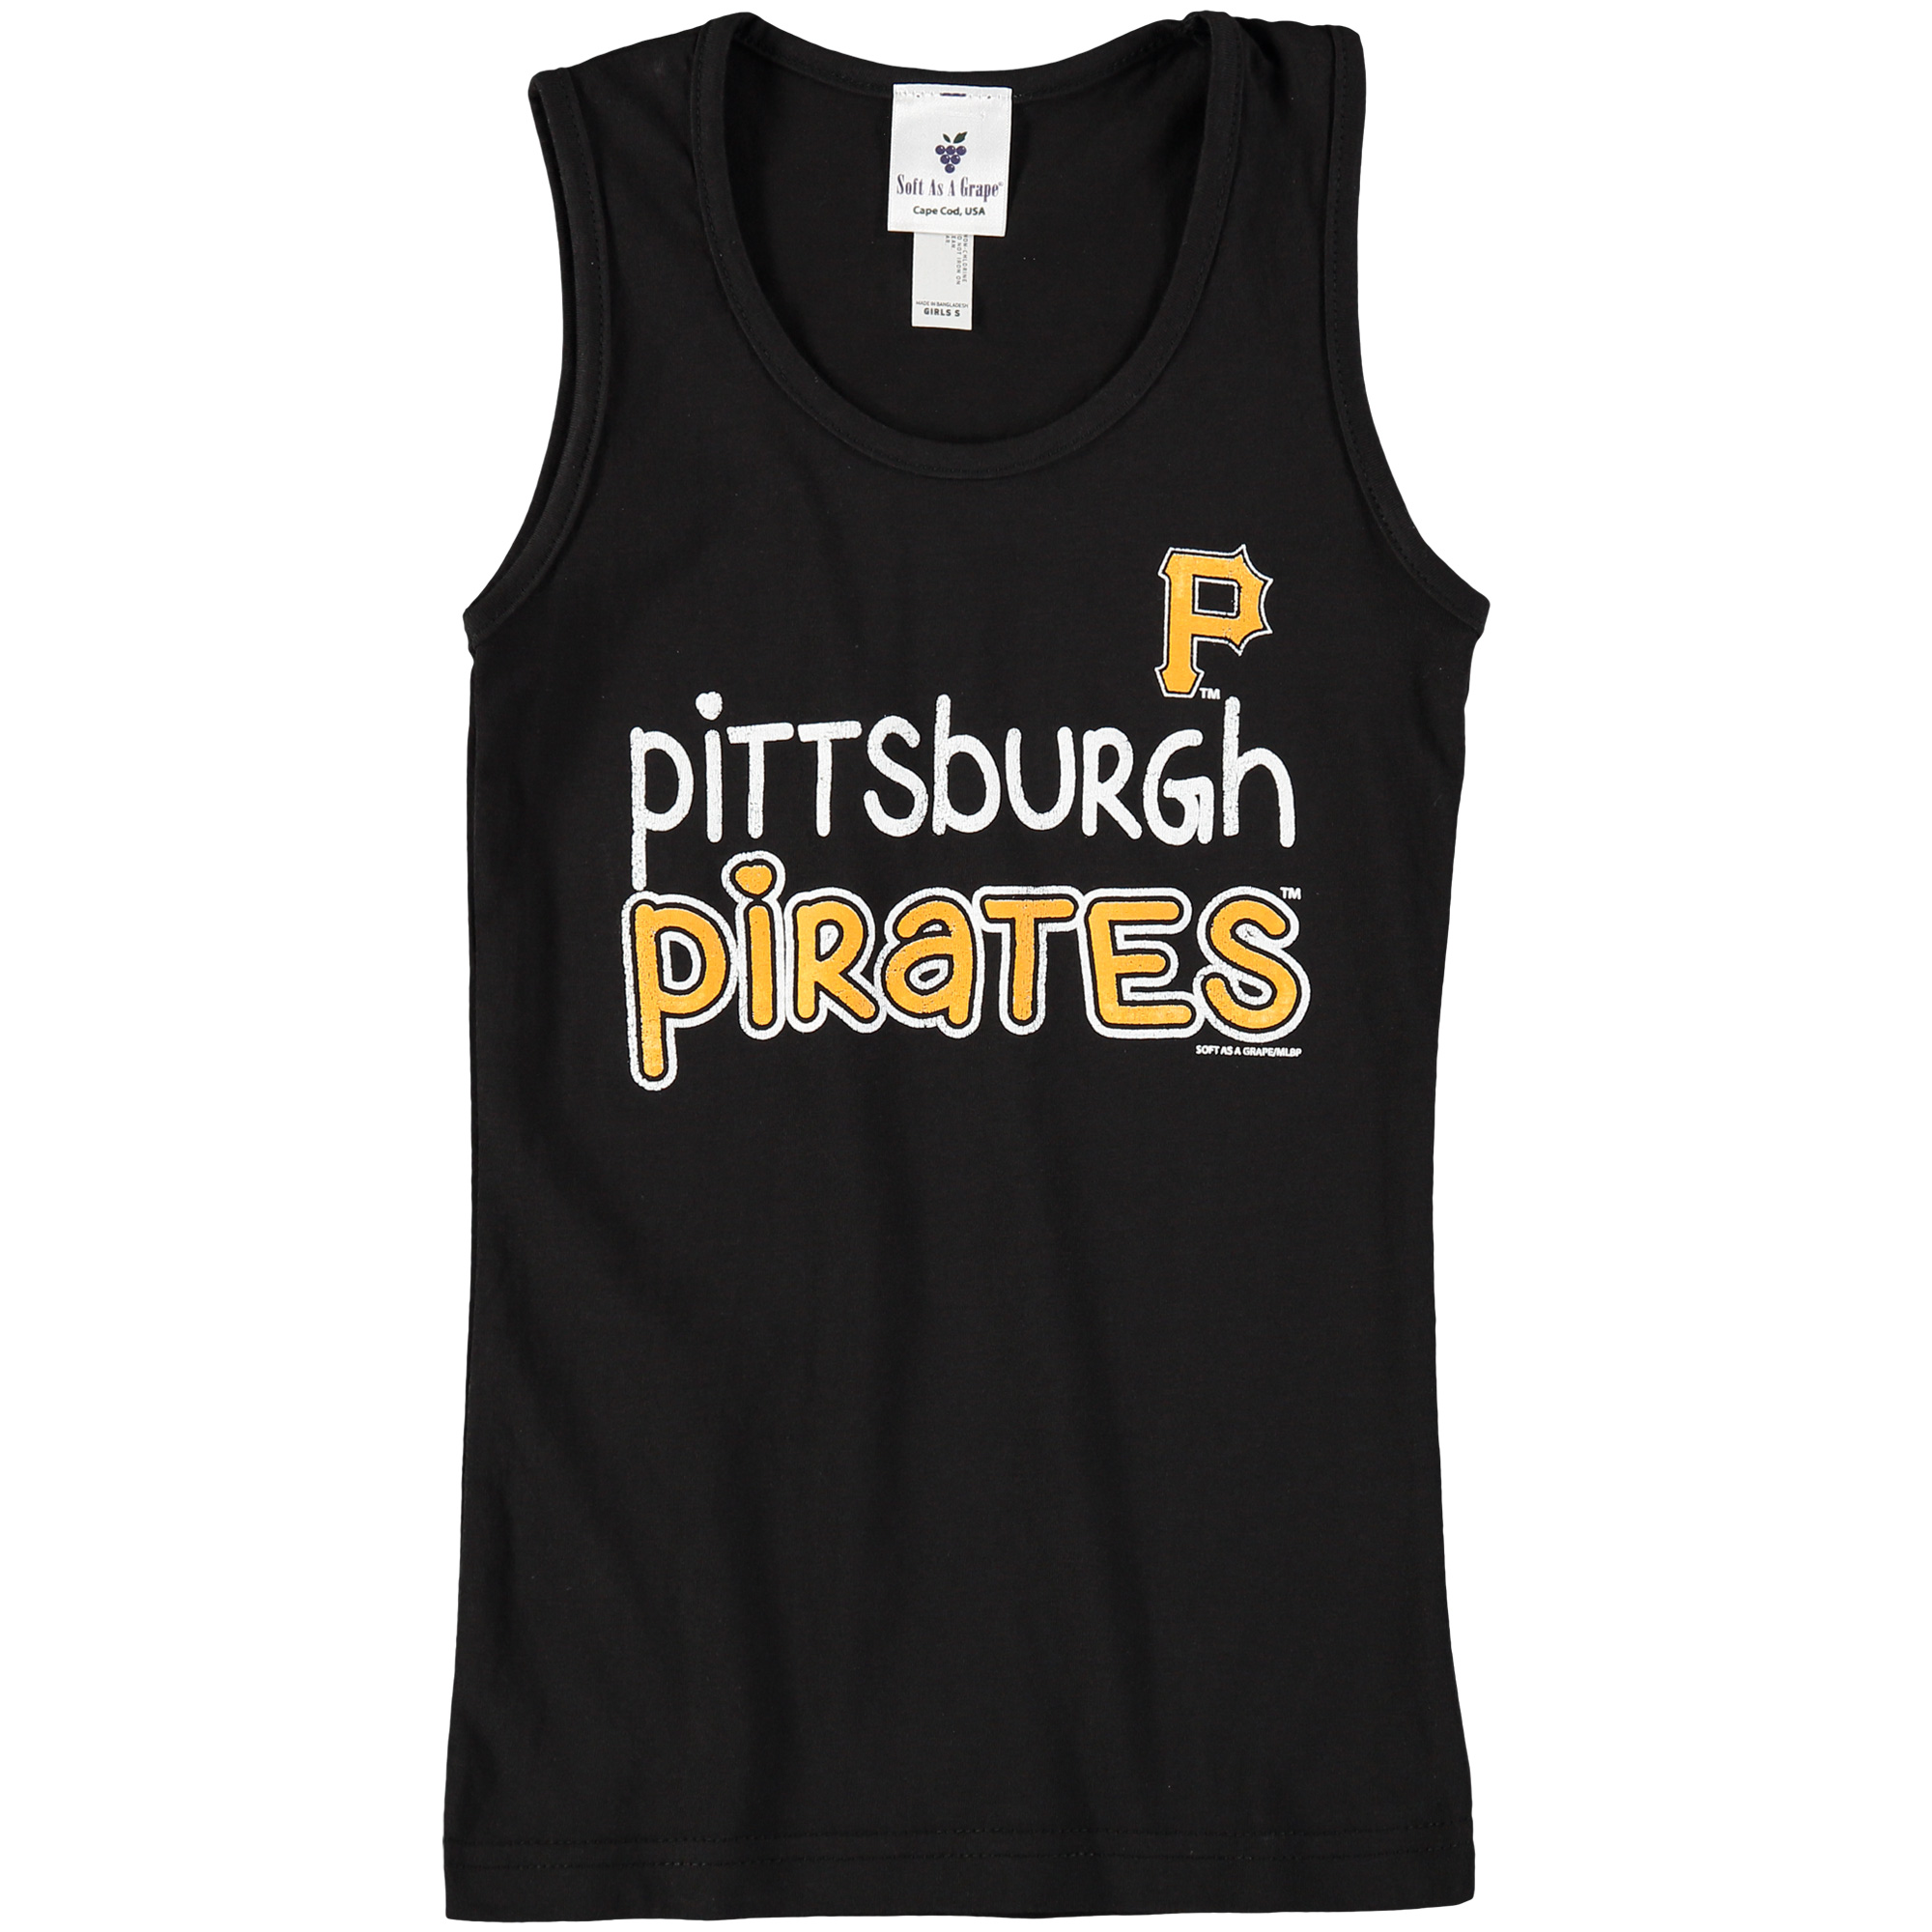 Pittsburgh Pirates Soft as a Grape Girls Youth Curveball Tank Top - Black